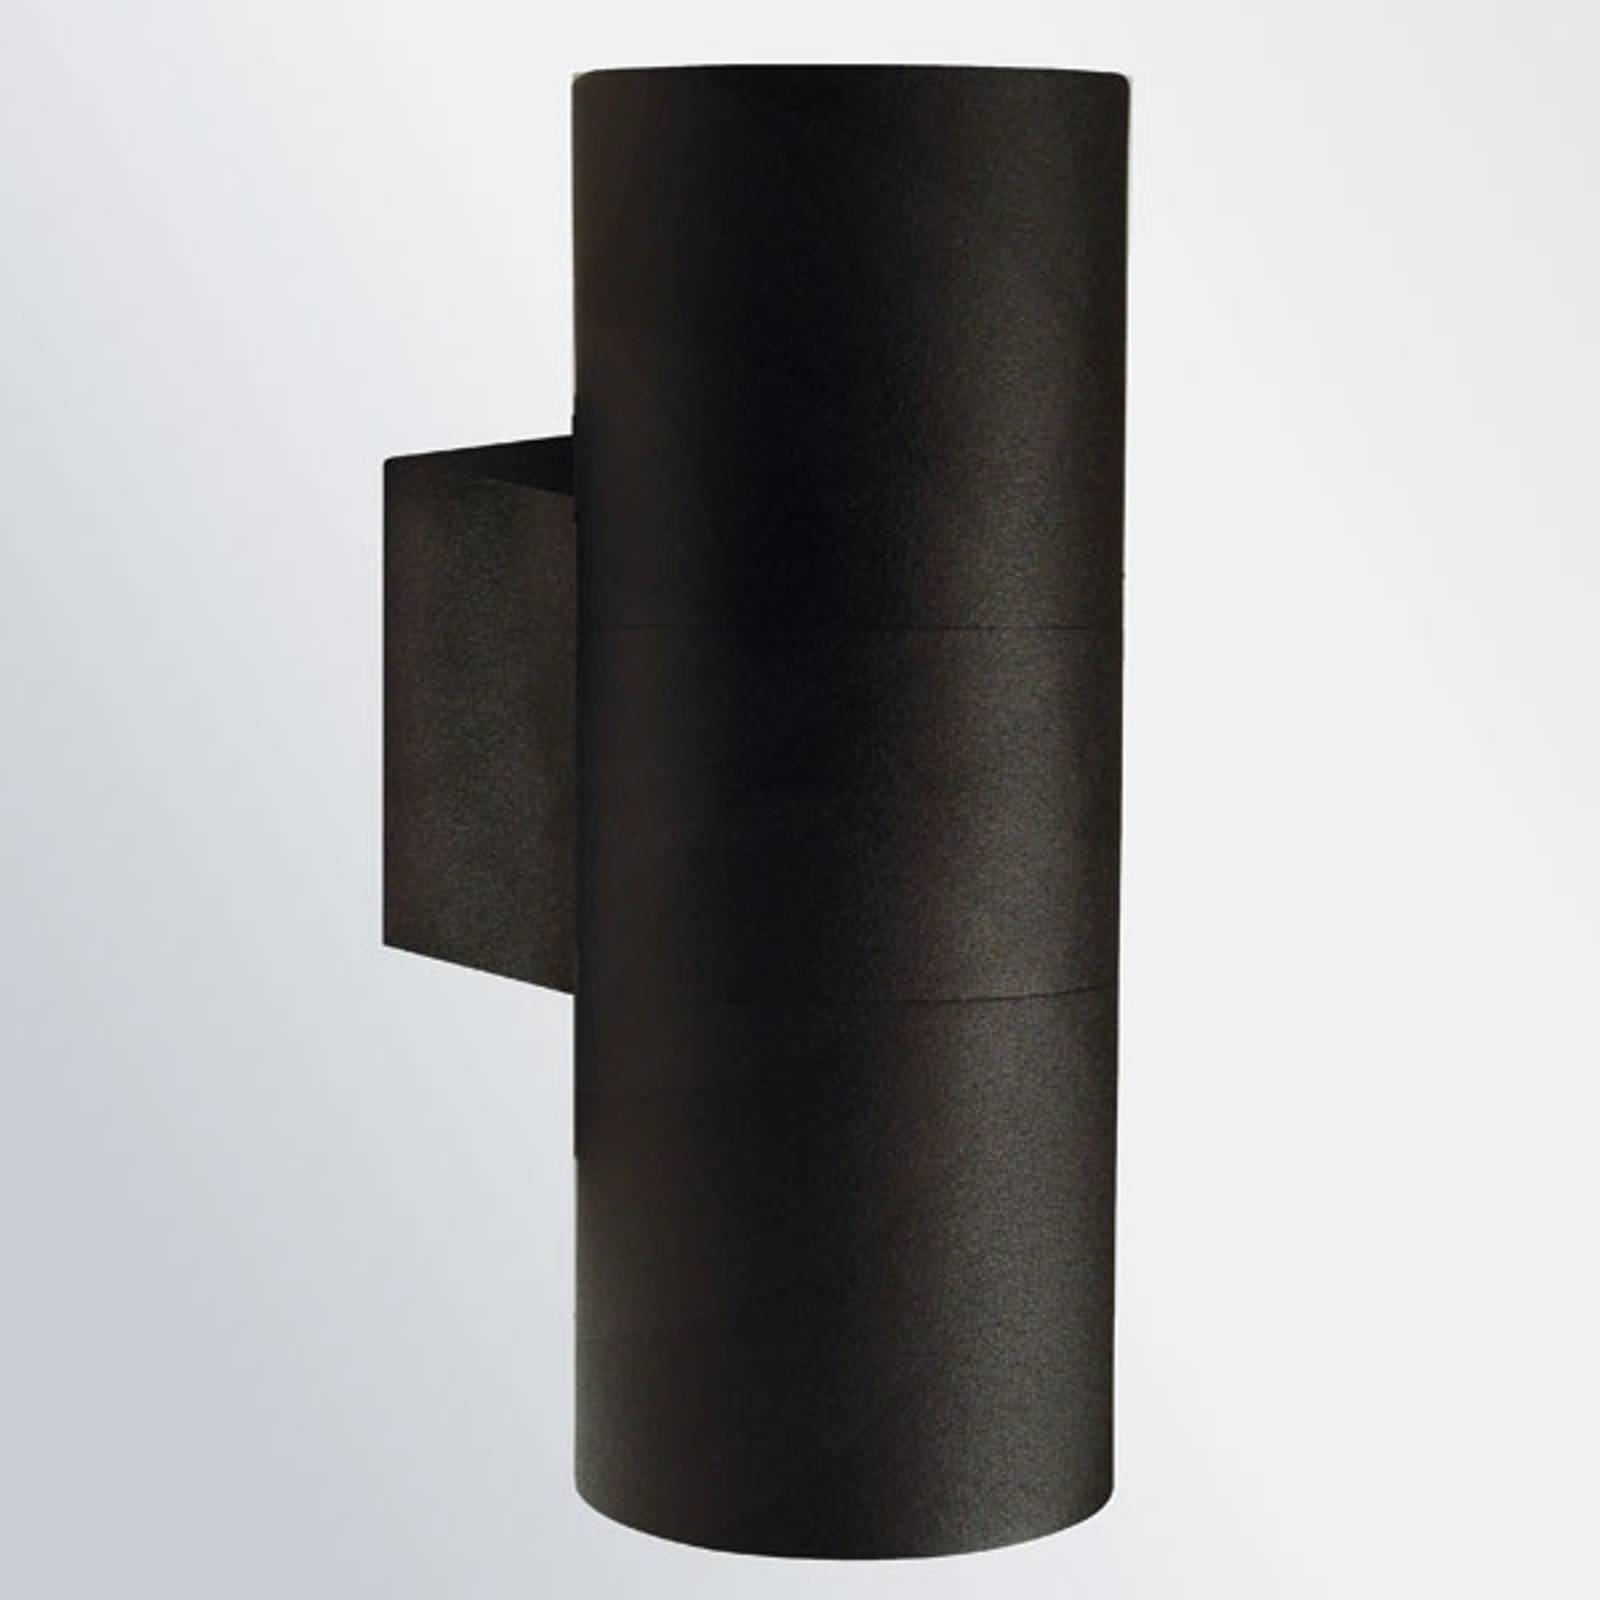 Tin Maxi Double outdoor wall lamp black from Nordlux